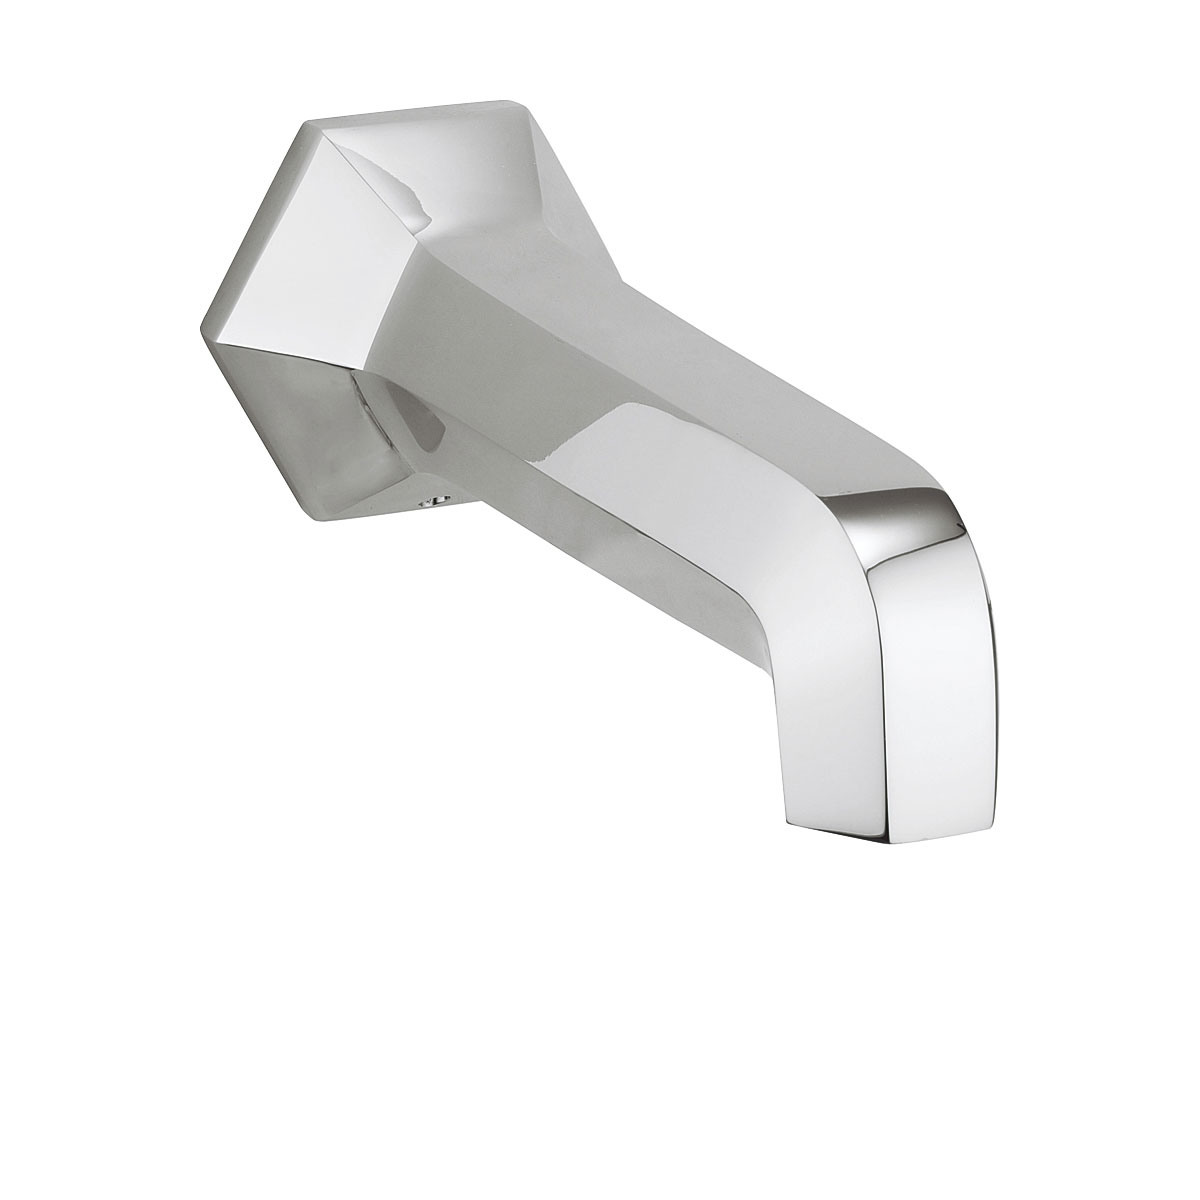 WF0370WC waldorf bath spout